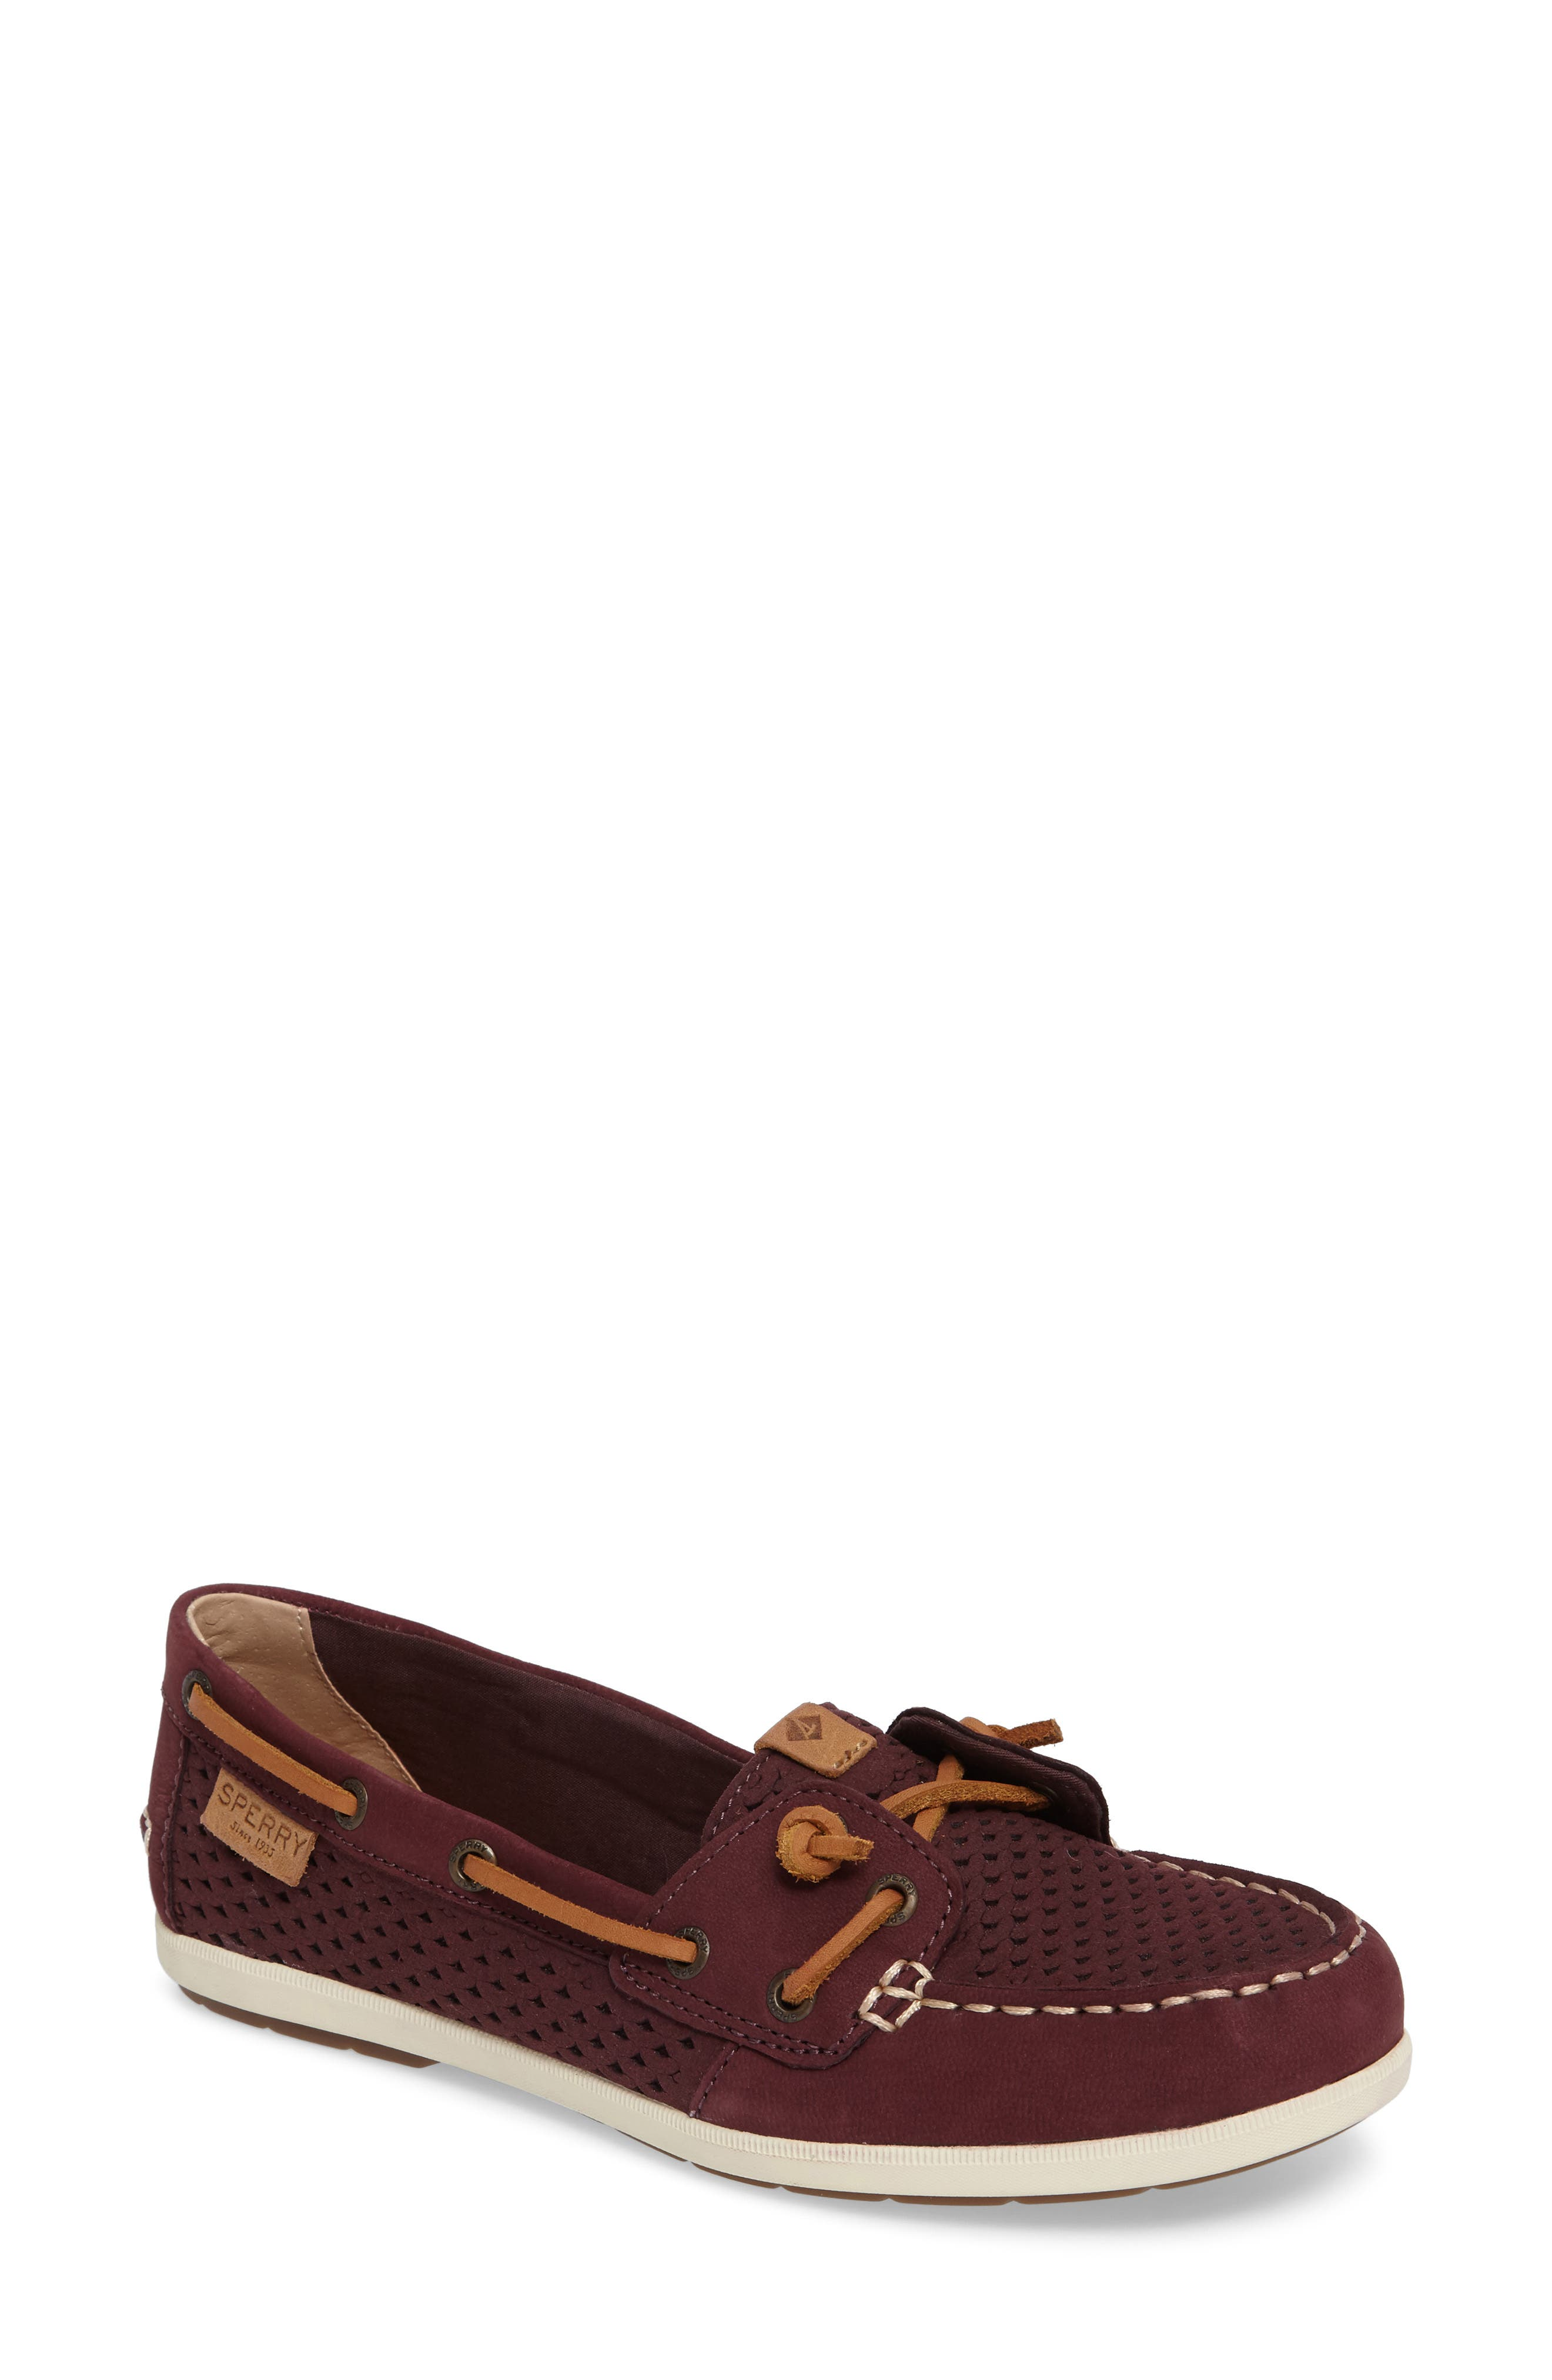 Coil Ivy Perforated Boat Shoe,                         Main,                         color,